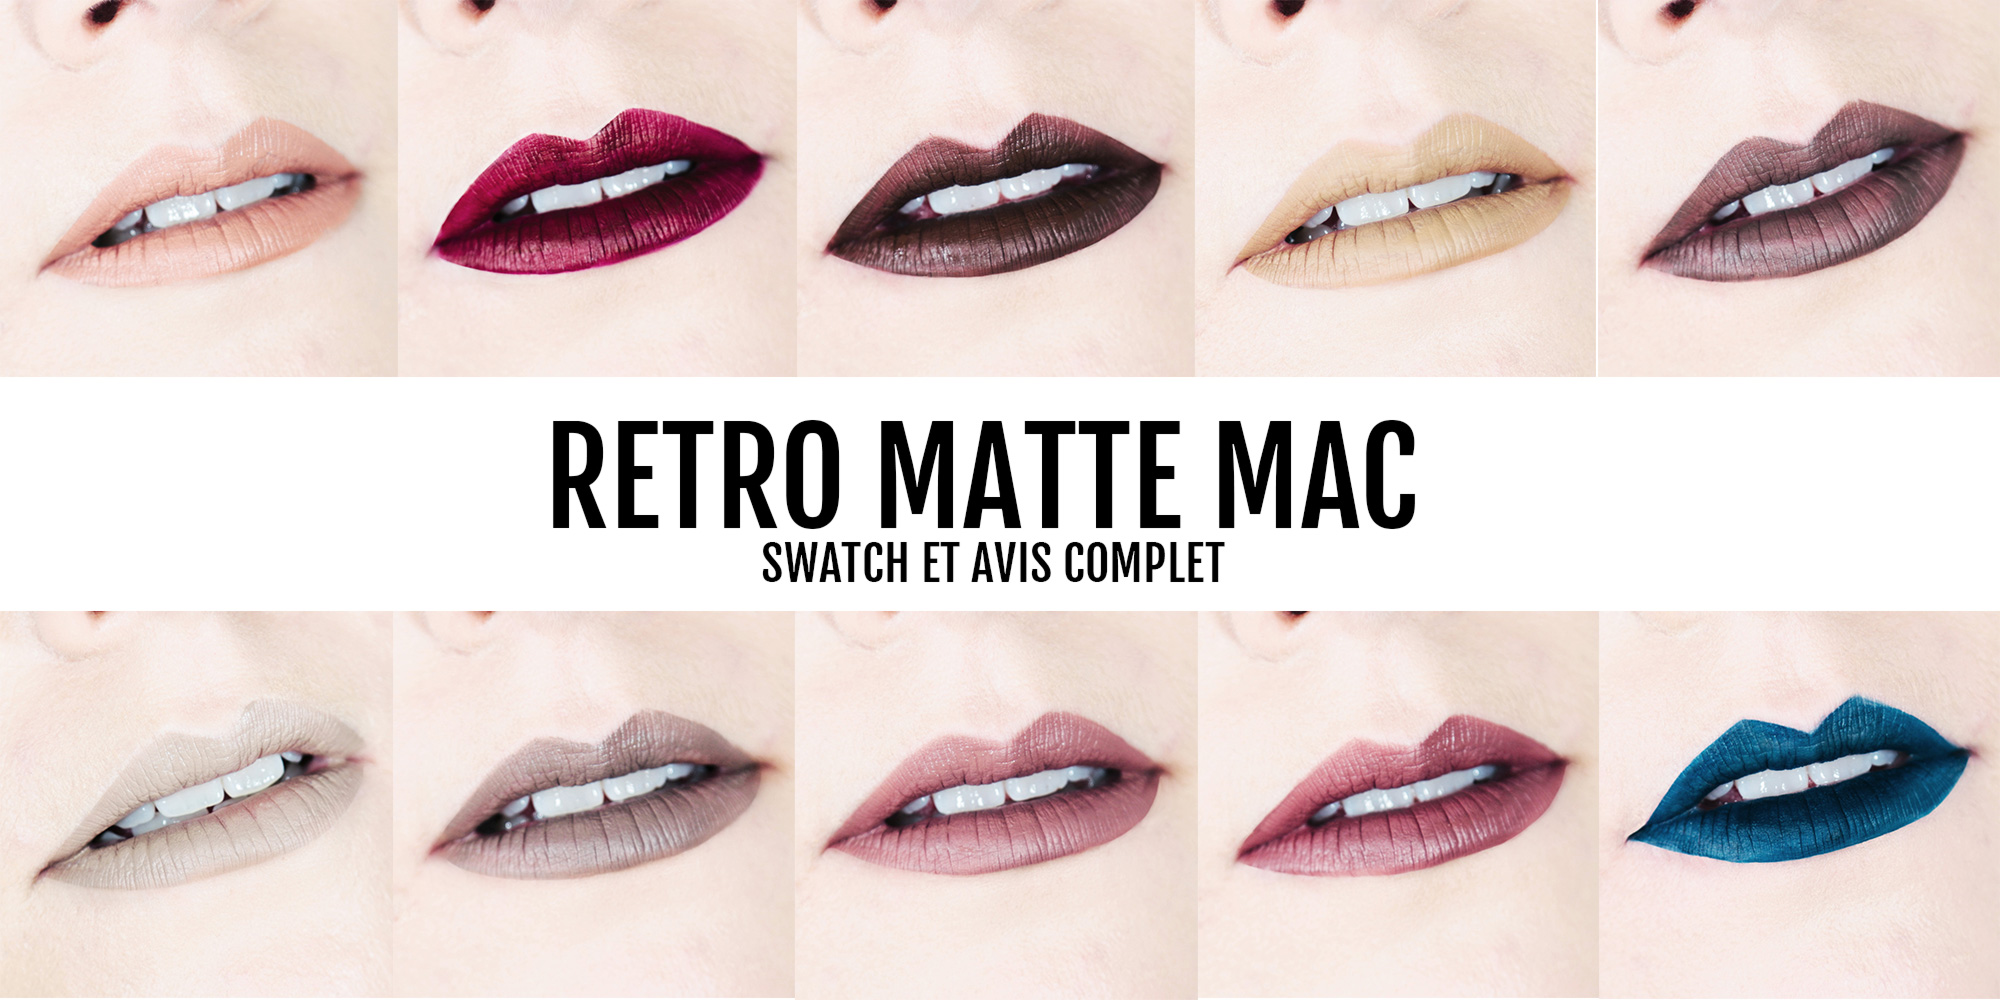 retro matte mac cosmetics